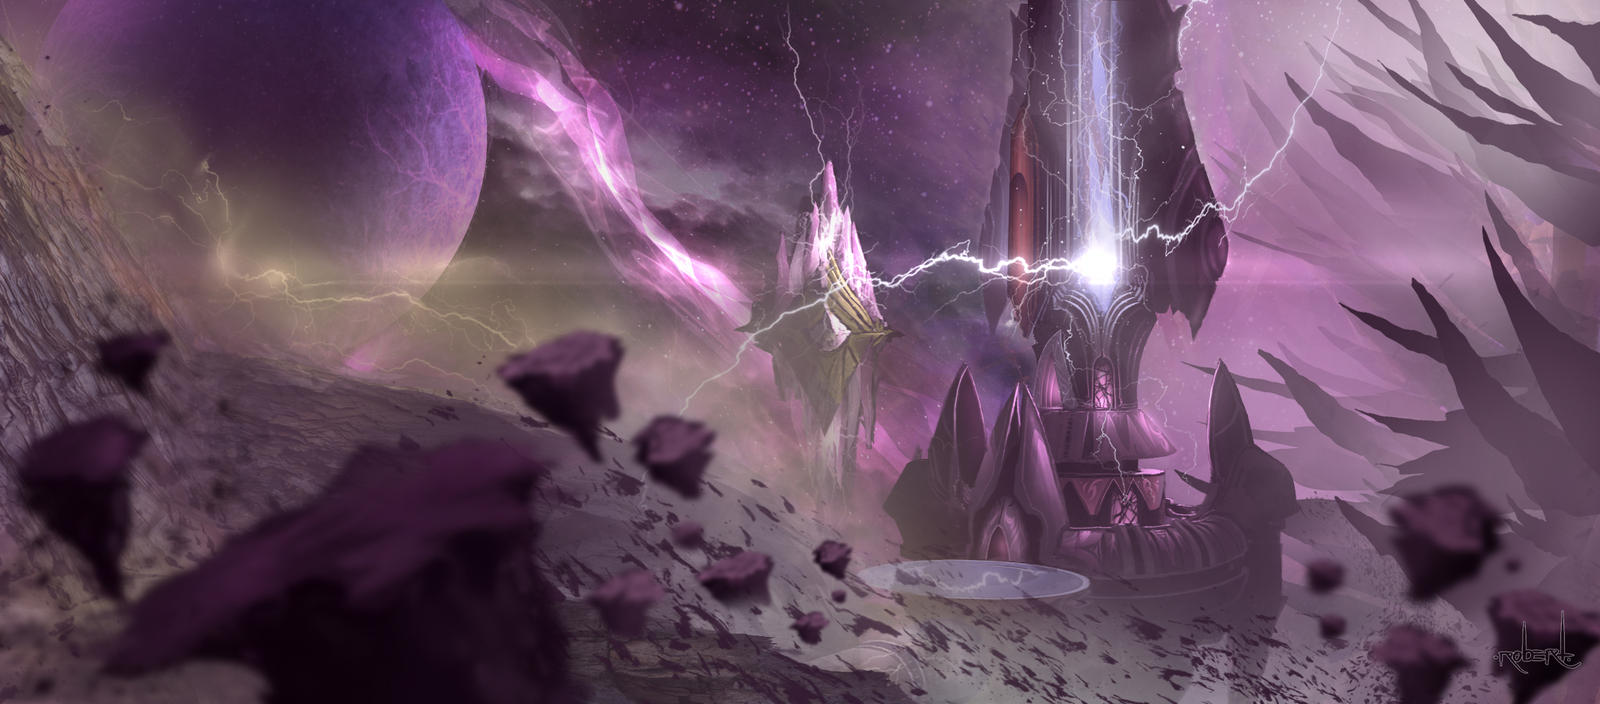 Netherstorm (World of Warcraft). by d1eselx